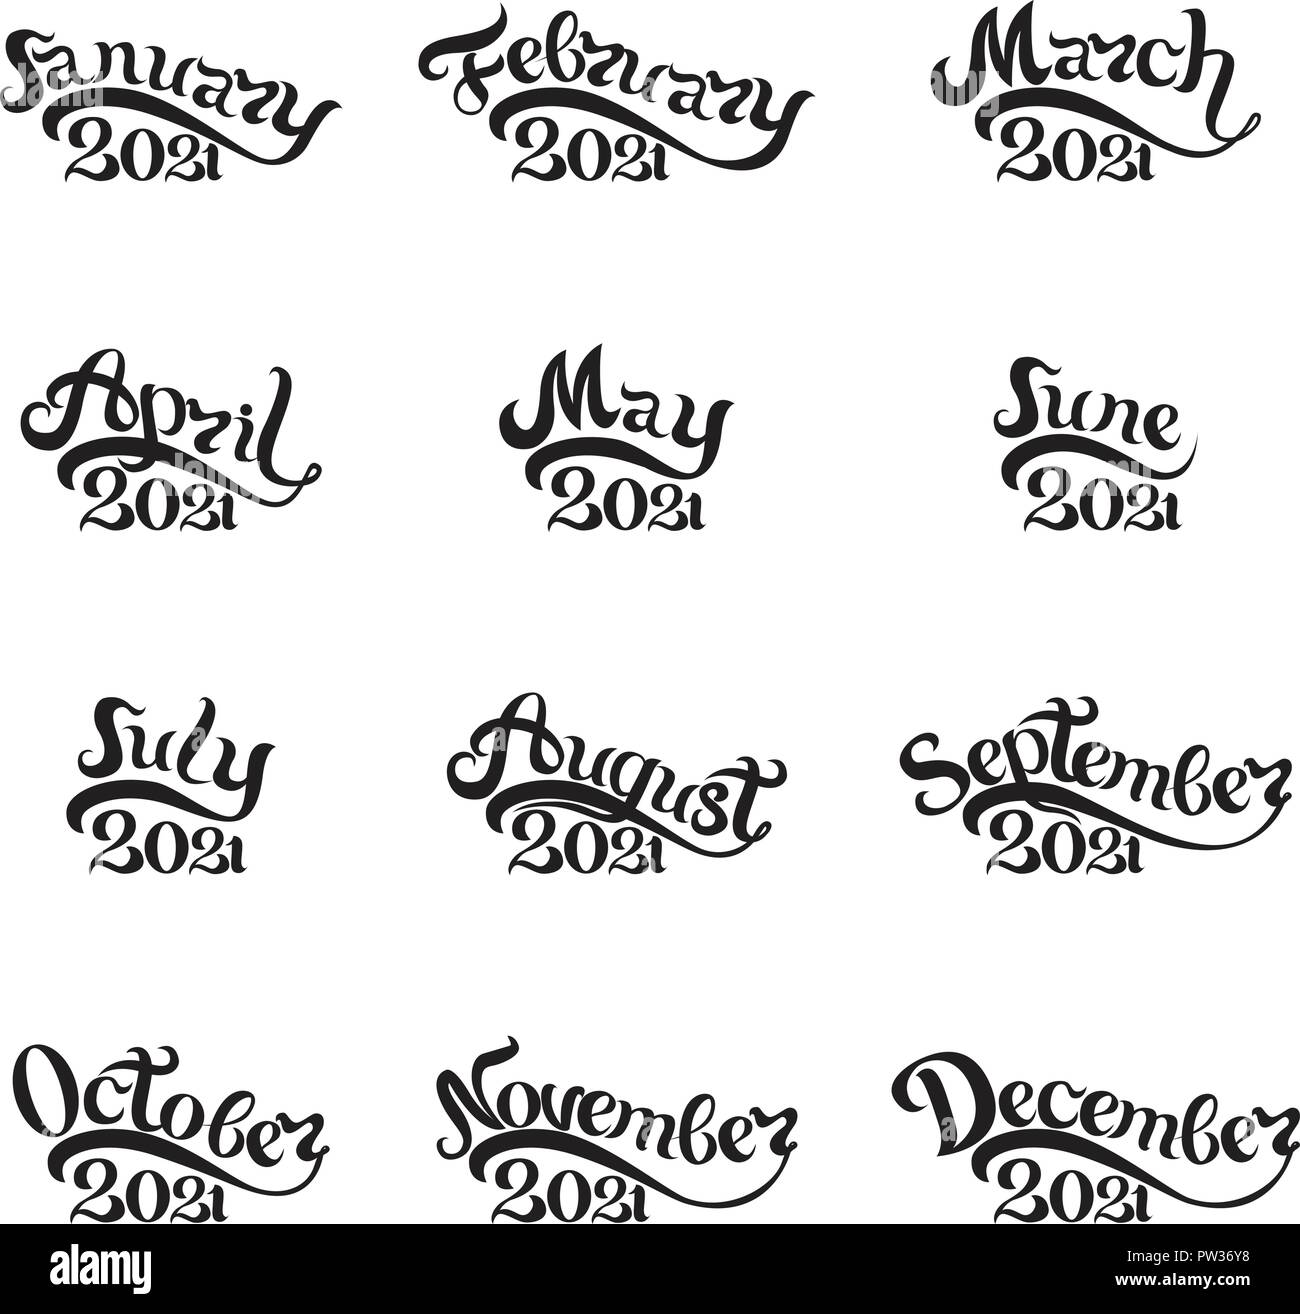 The names of all months 2020 written by hand. Lettering. Beautiful letters on white background. Isolated image for invitations, calendars, t-shirt pri - Stock Image